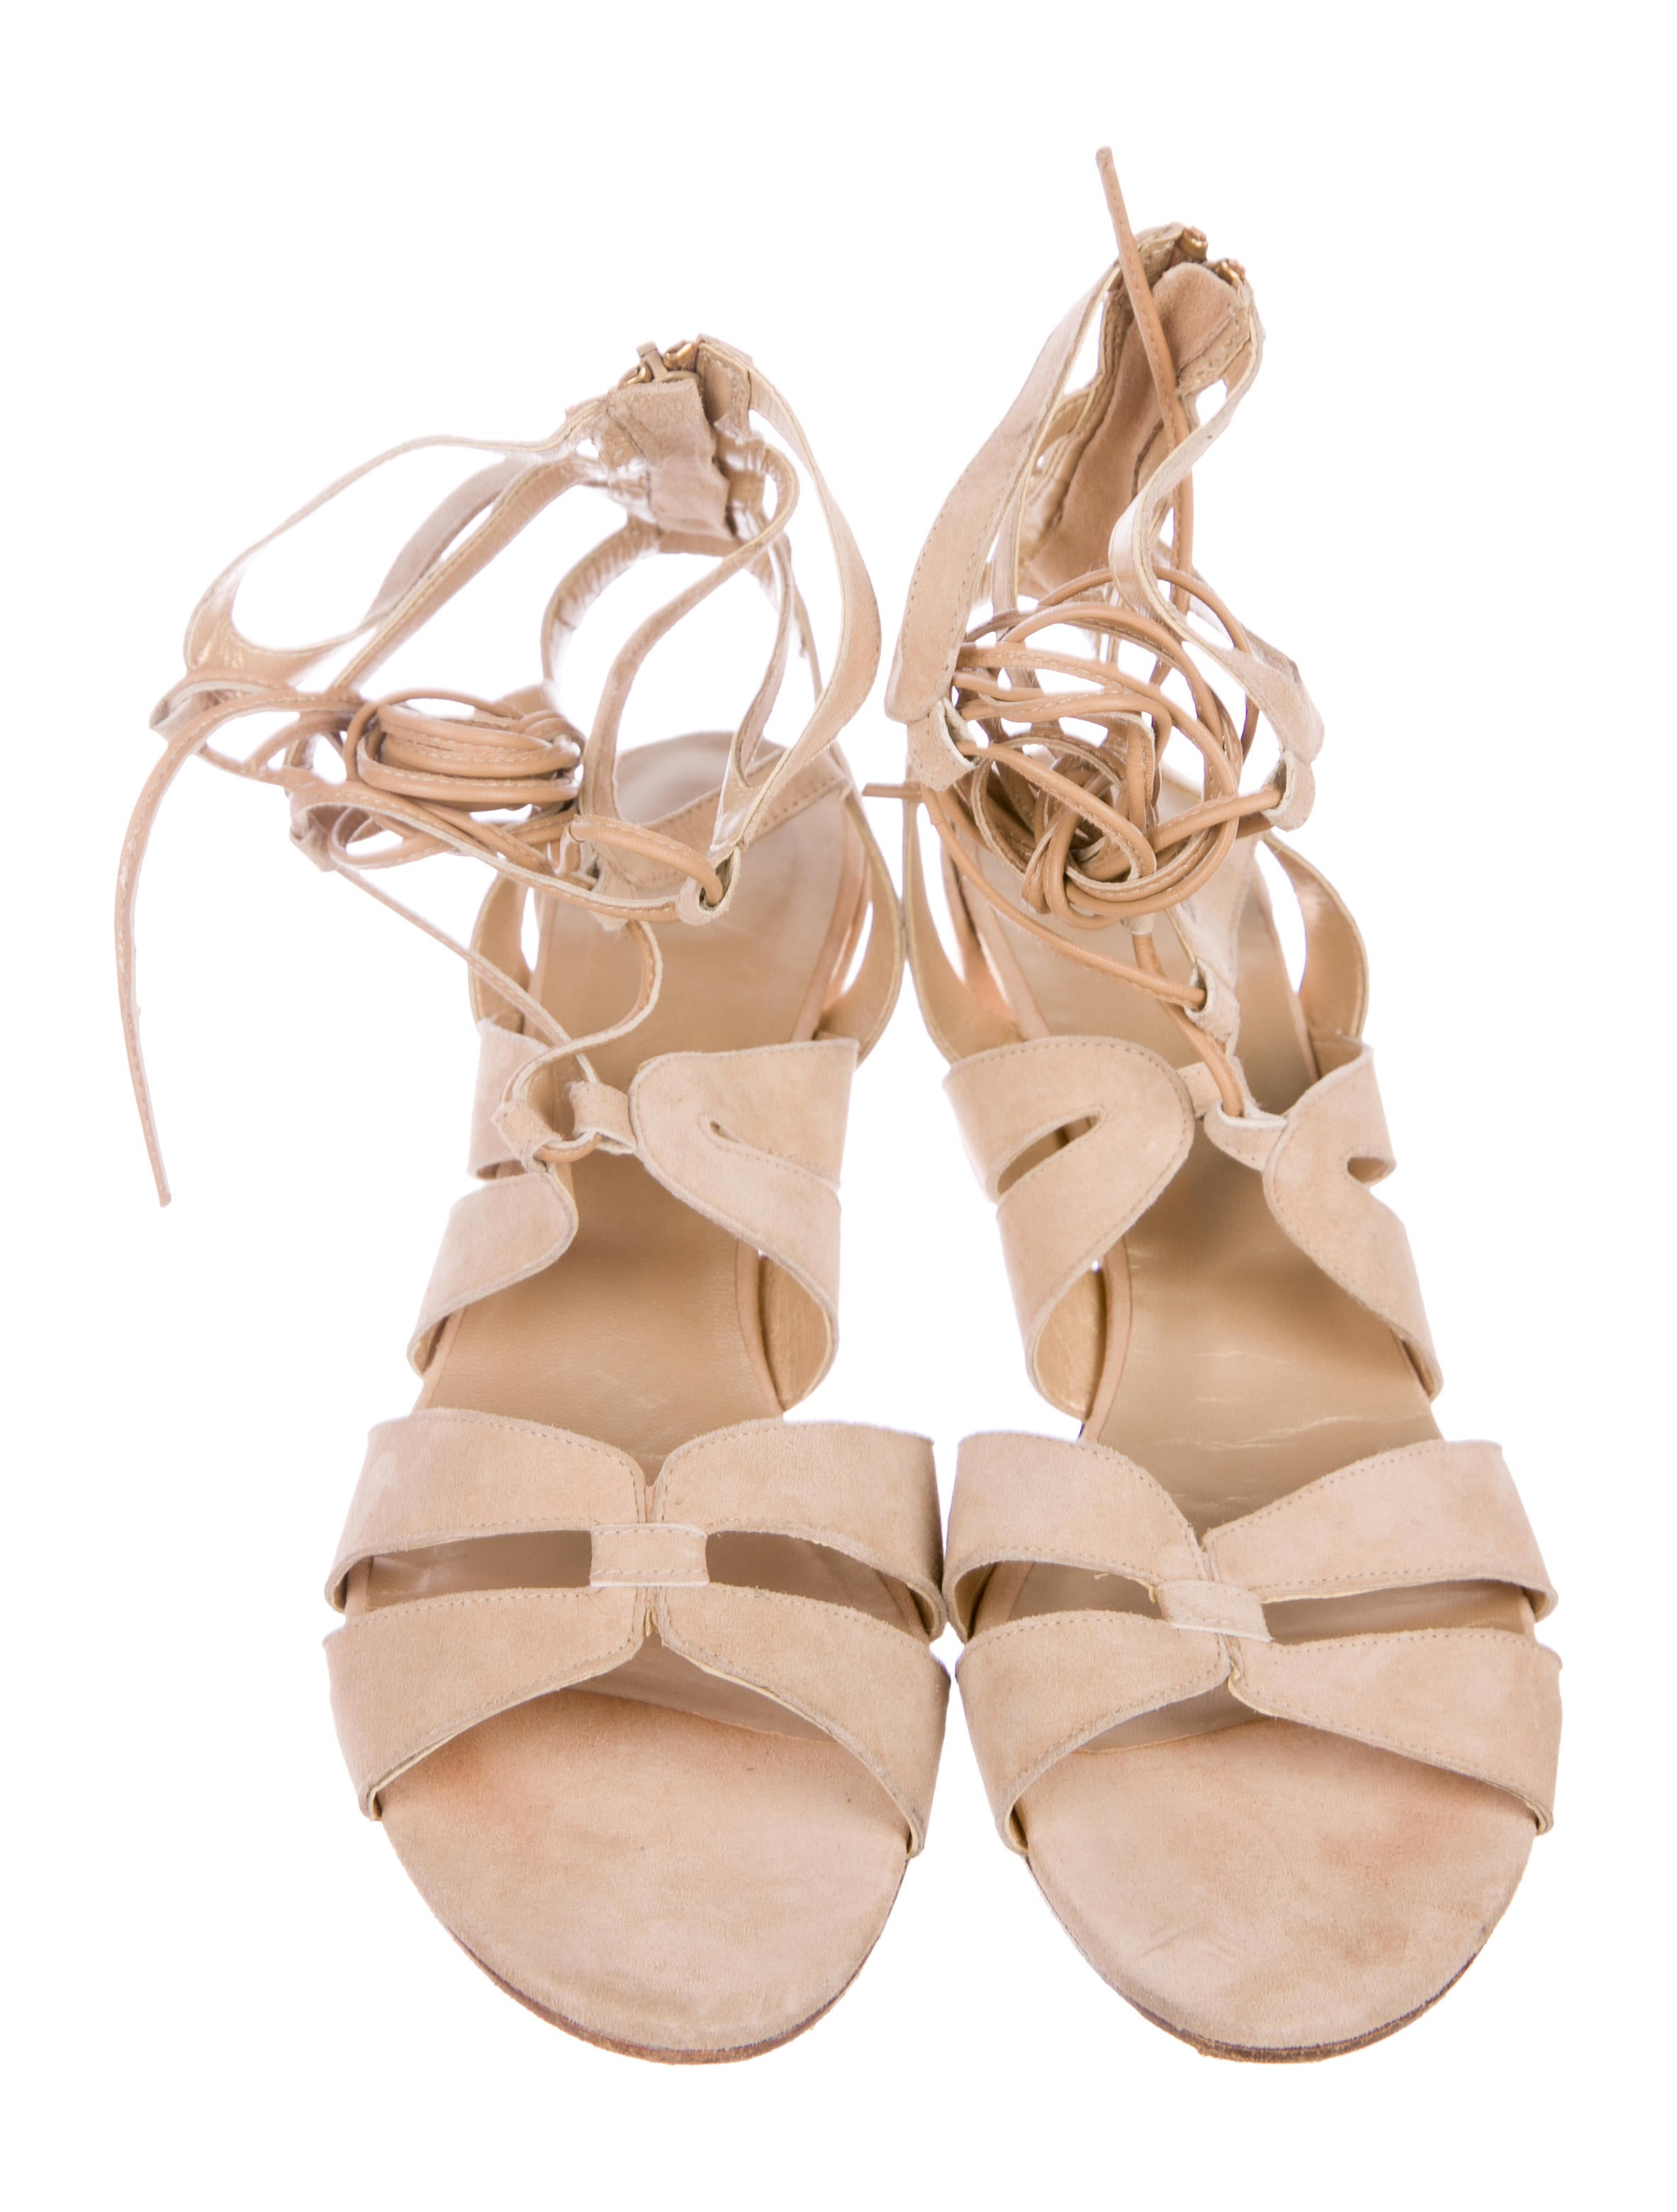 Stuart Weitzman Tie Girl Suede Multi-Strap Lace-Up Sandals quality free shipping outlet cheap sale extremely online Shop outlet locations cheap online factory outlet cheap price oyyFY40n